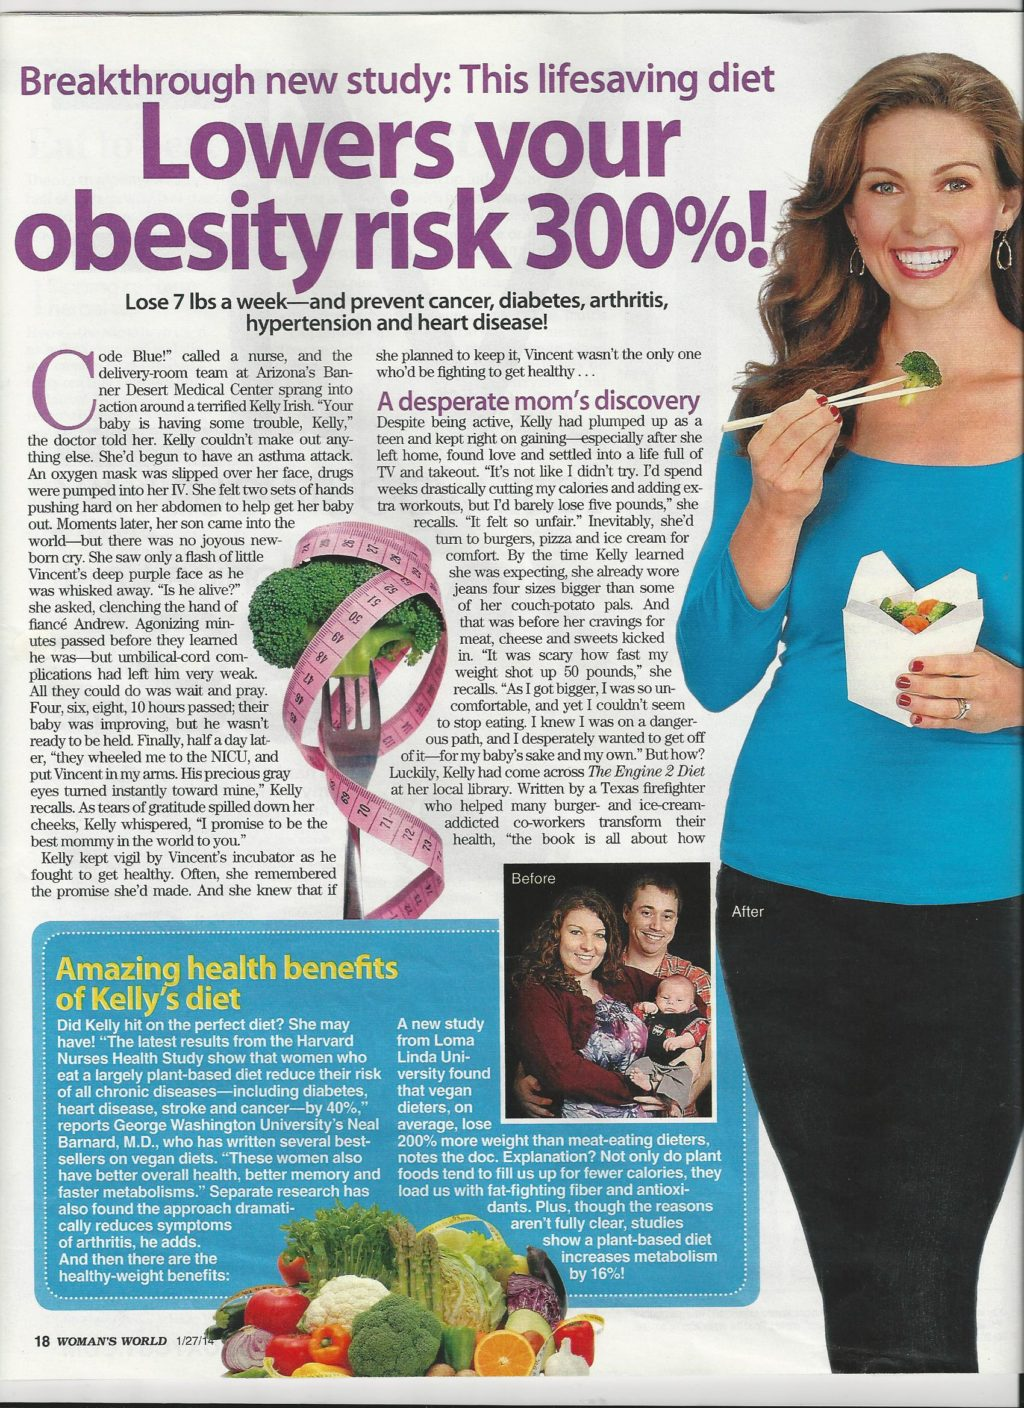 lower-obesity-risk-nutrition-tips